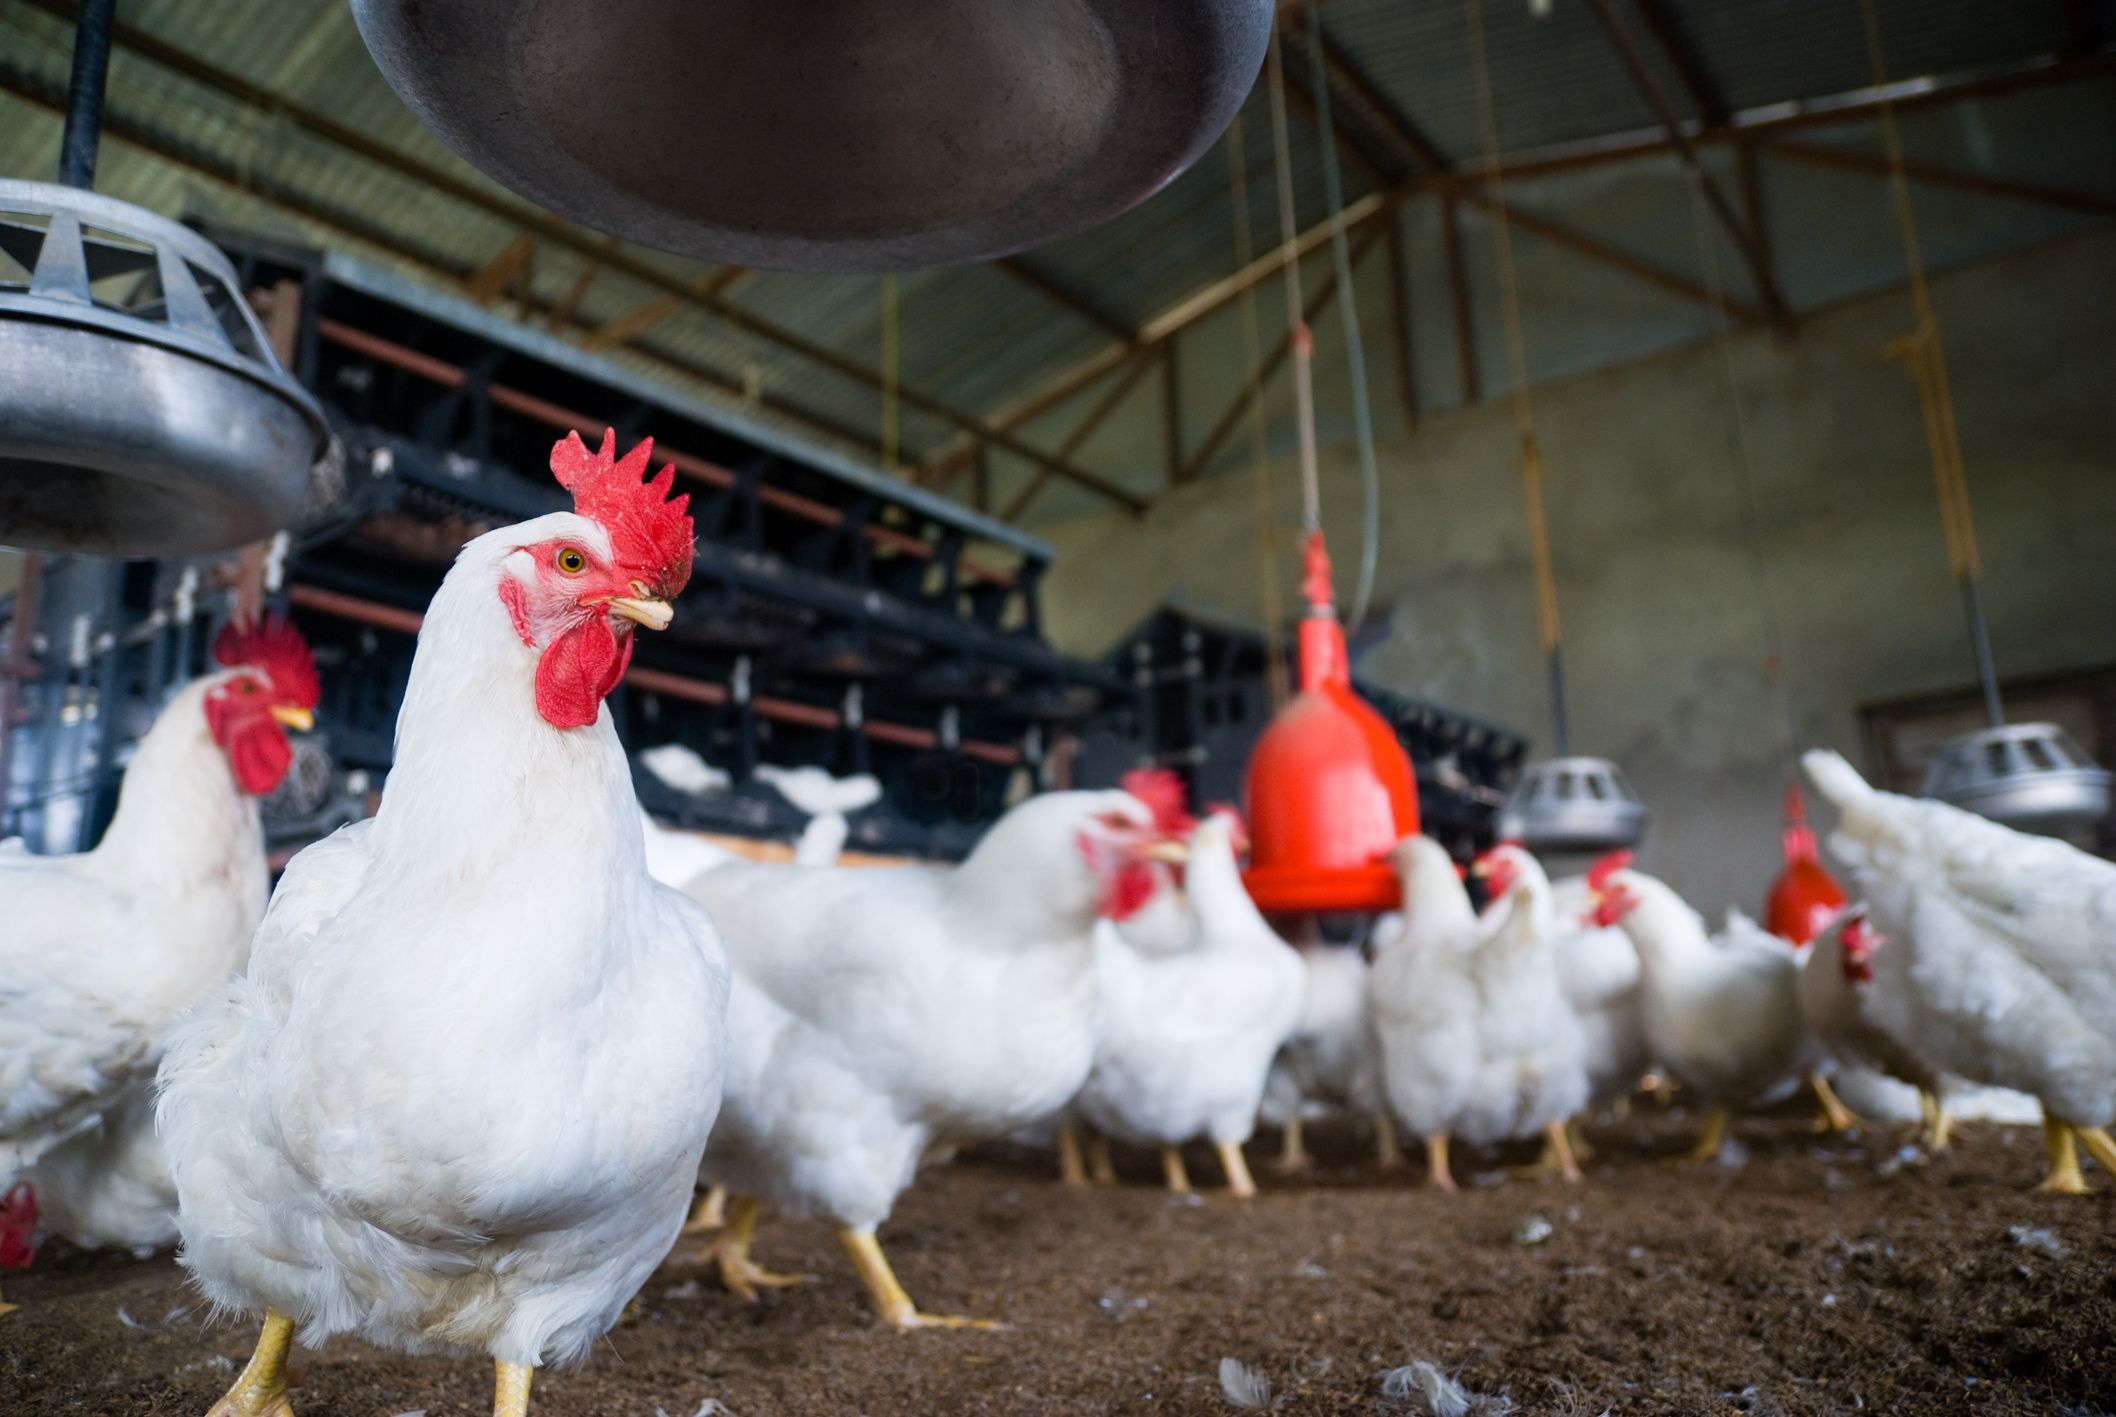 poultry farm We can not compare the poultry with goat/sheep farming both have their advantages and disadvantages poultry farming profits and goat farming profits depend on many factors such as: feed, climate, farm management practices, medical attention or v.